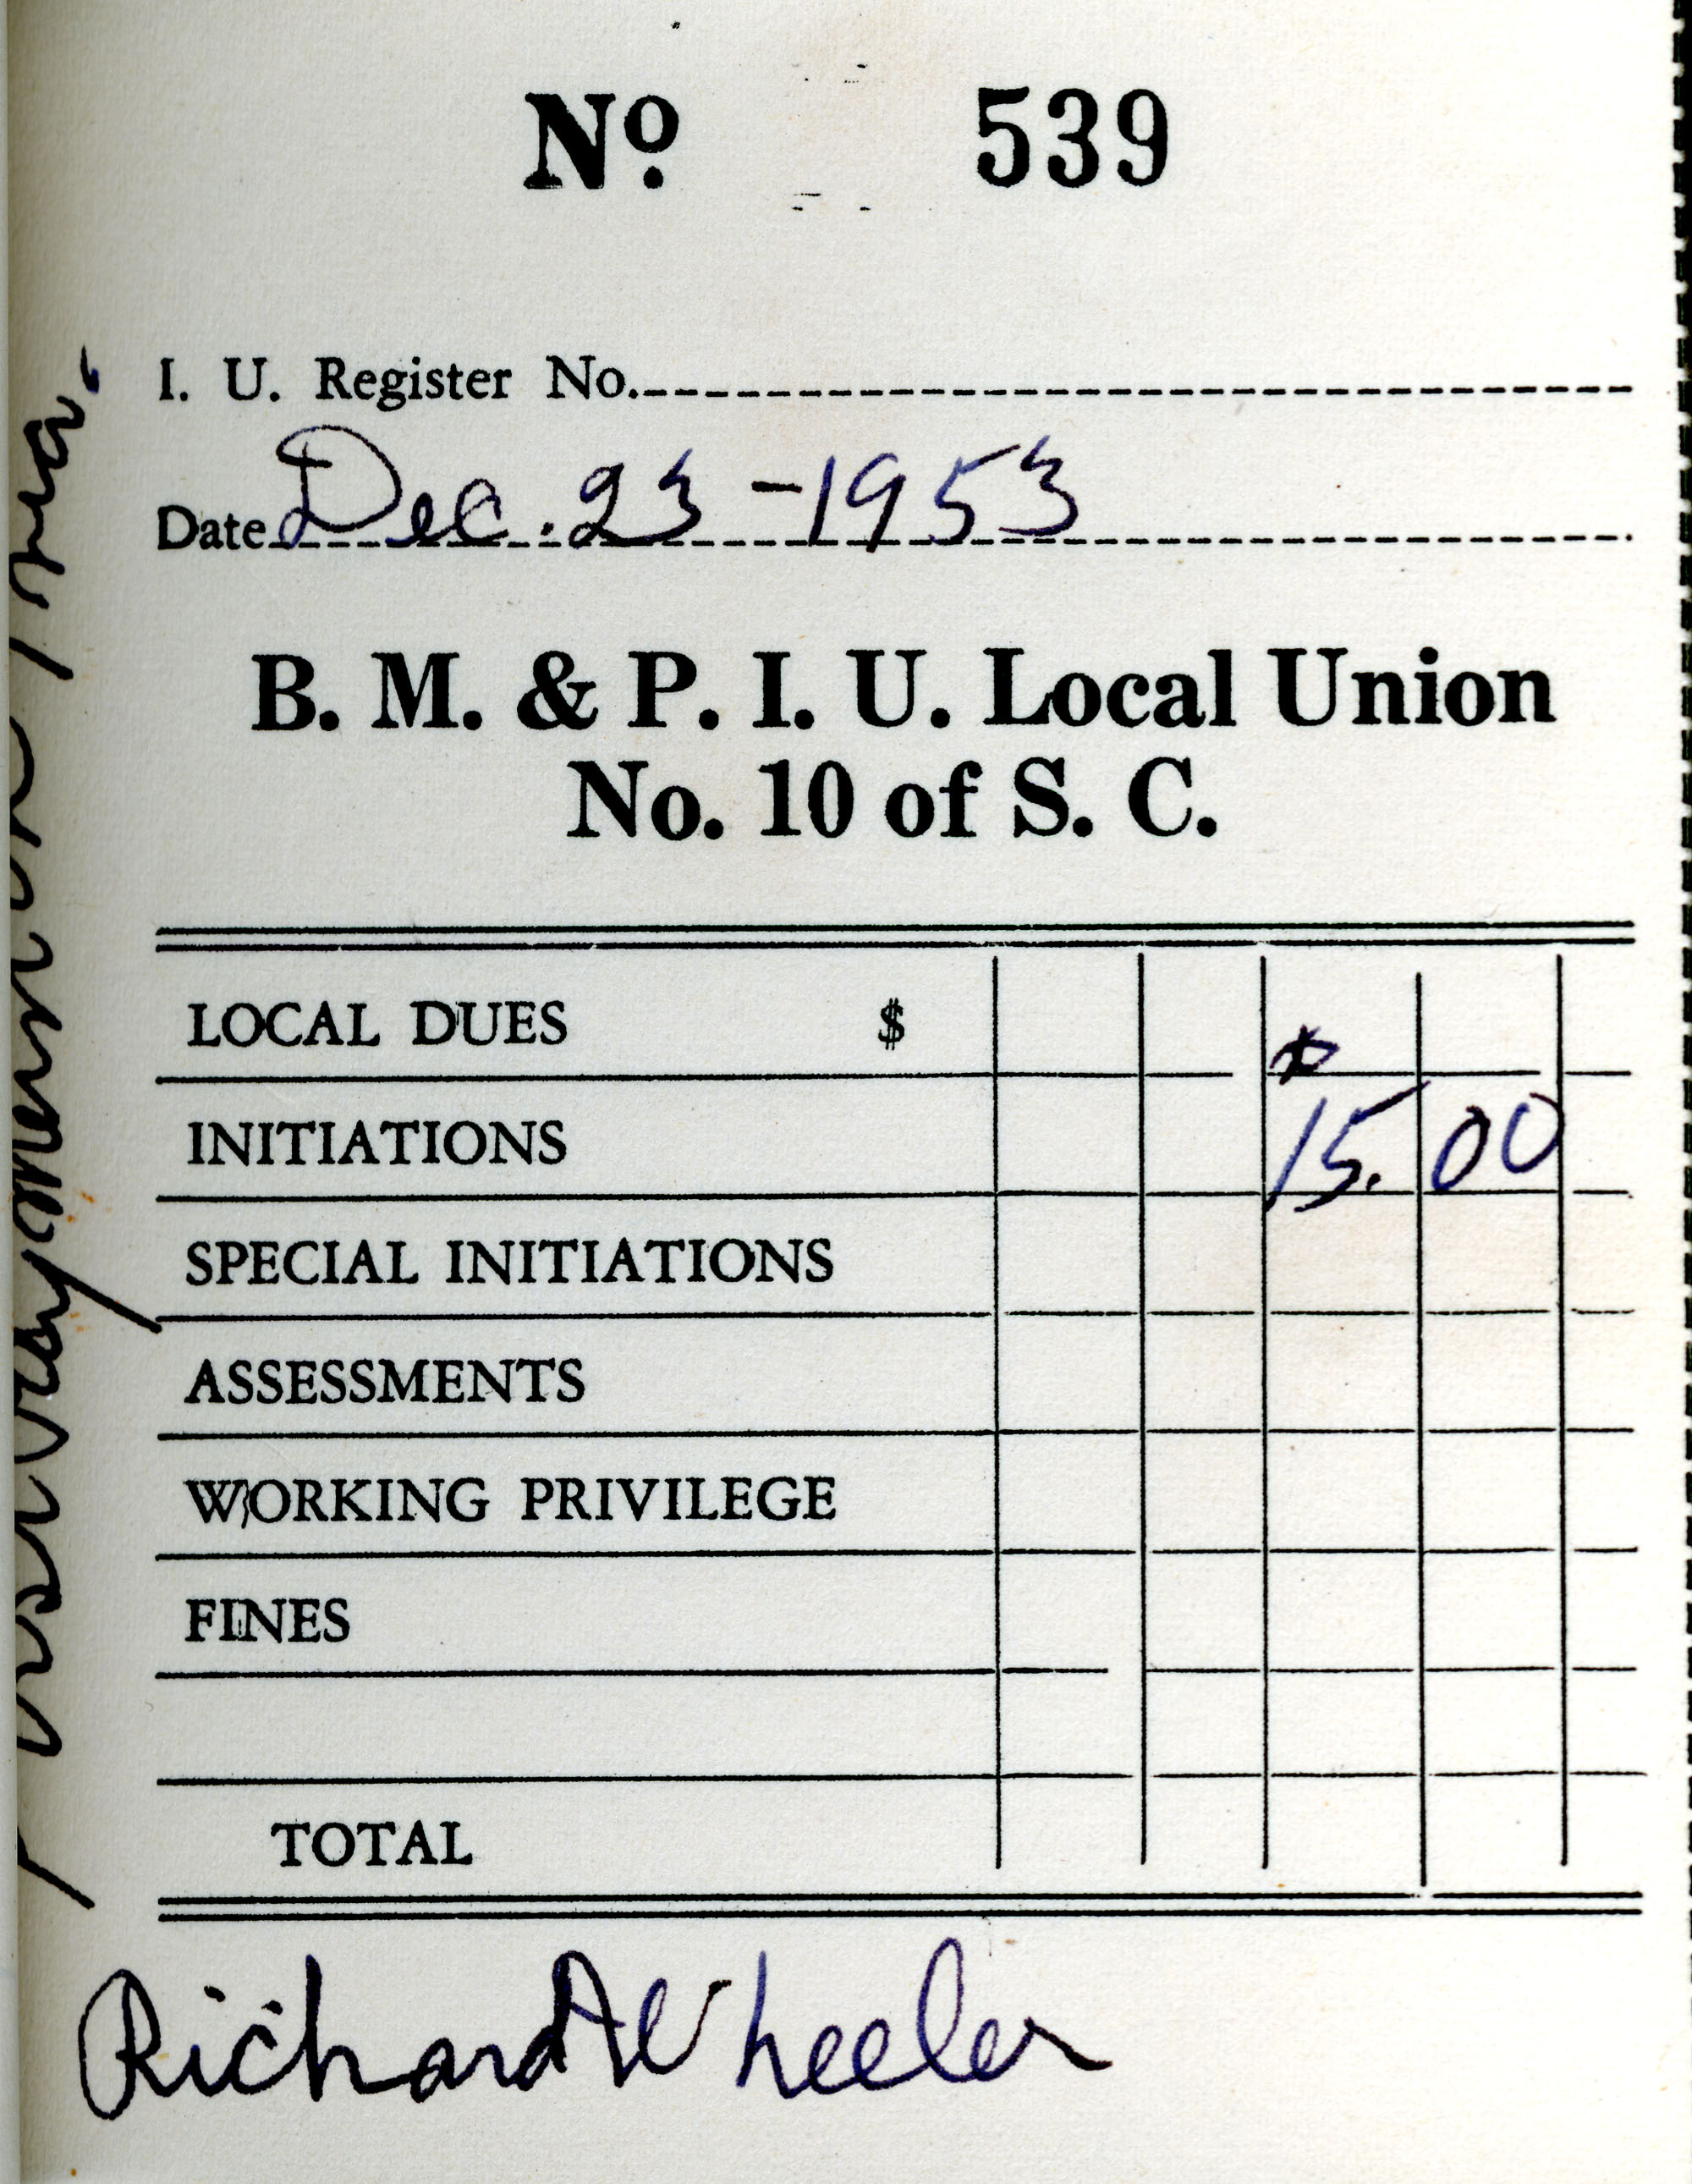 Receipt Book 2, Page 36